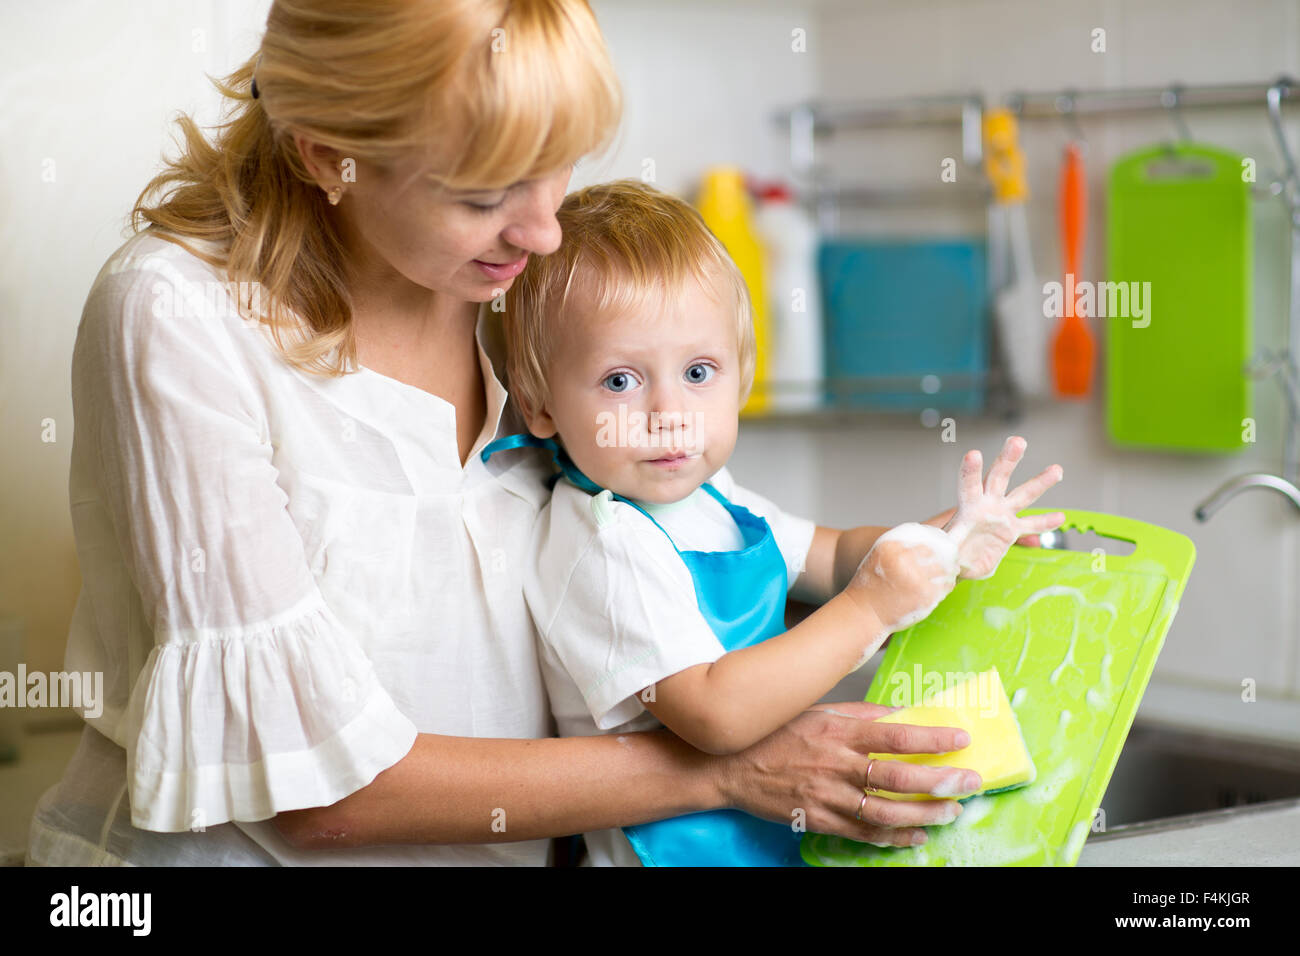 Mother And Kid Son Washing Dishes - Stock Image